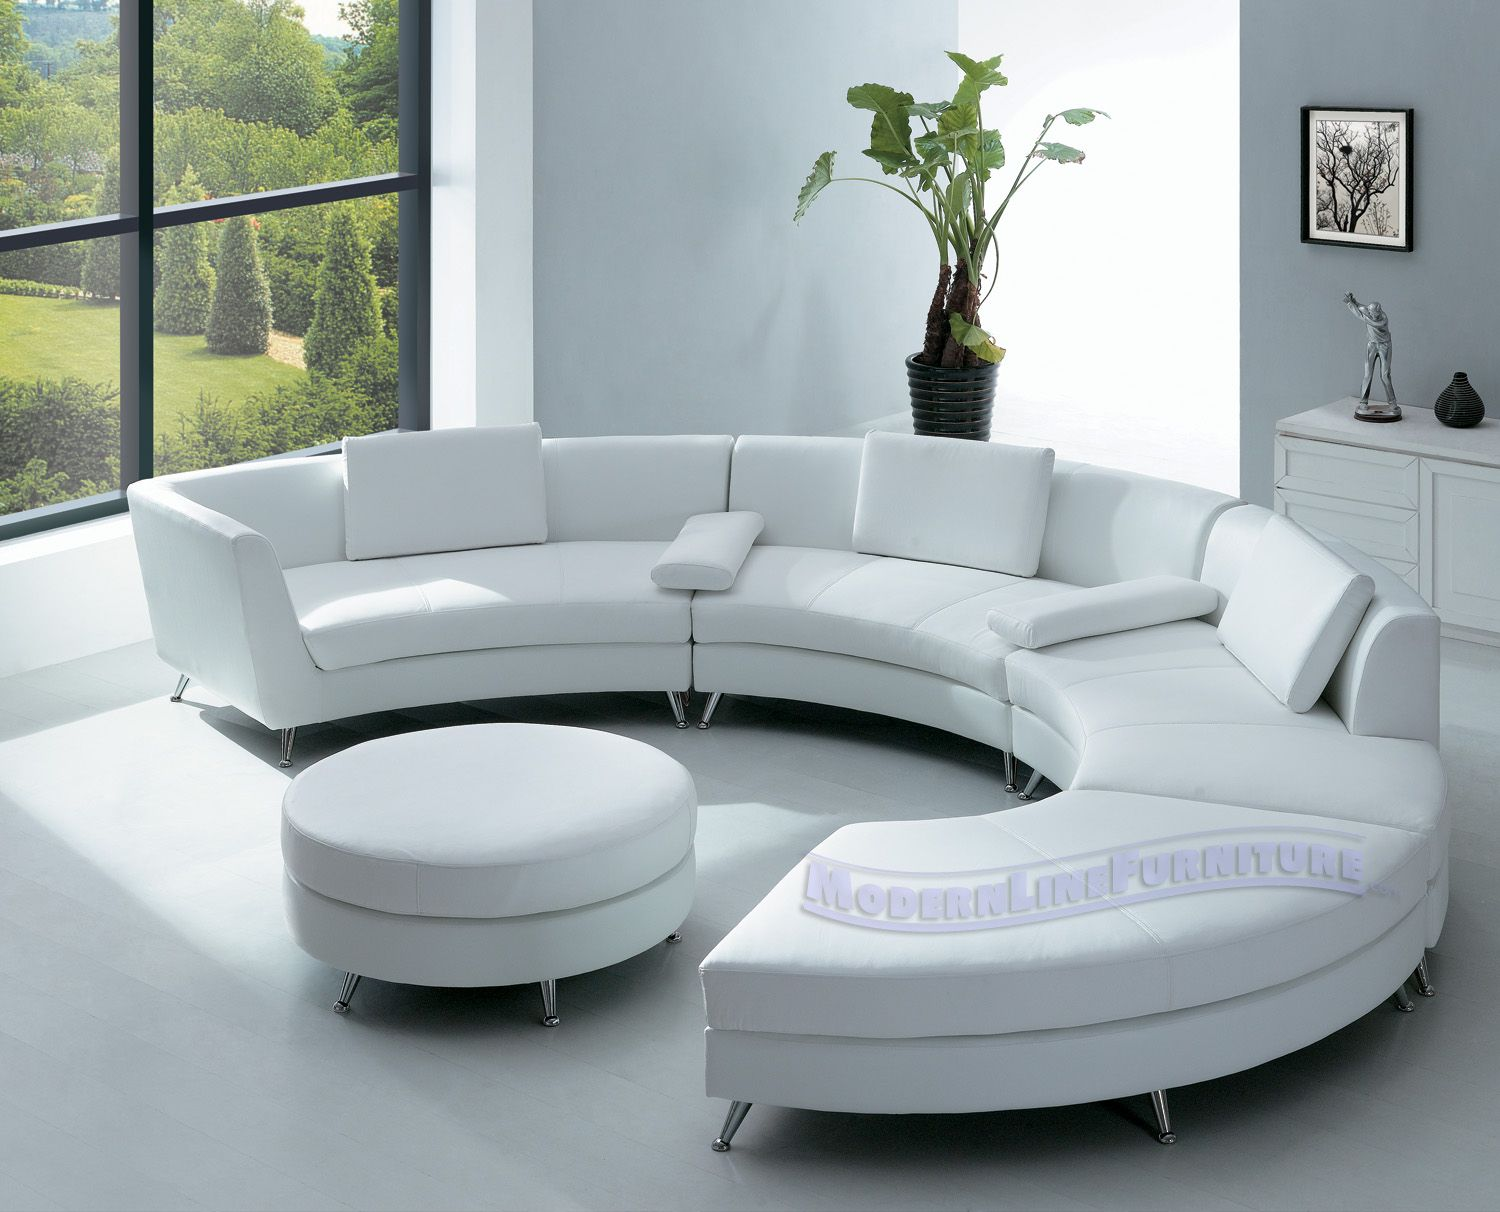 Modern Style Couches best 25+ contemporary sofa ideas on pinterest | modern couch